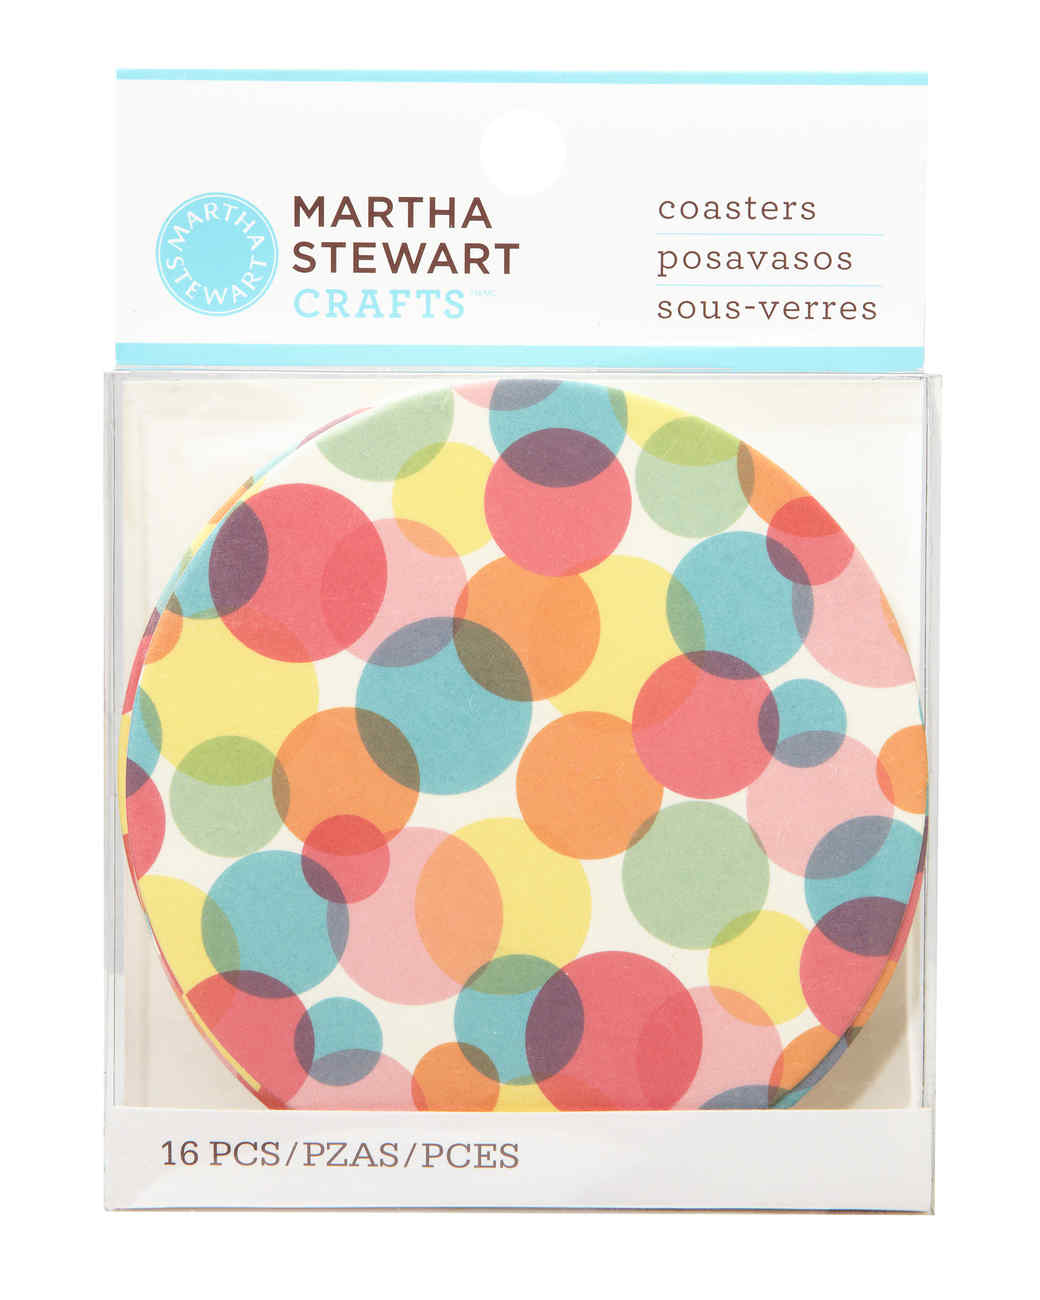 mscrafts-icecream-coasters-mrkt-0514.jpg